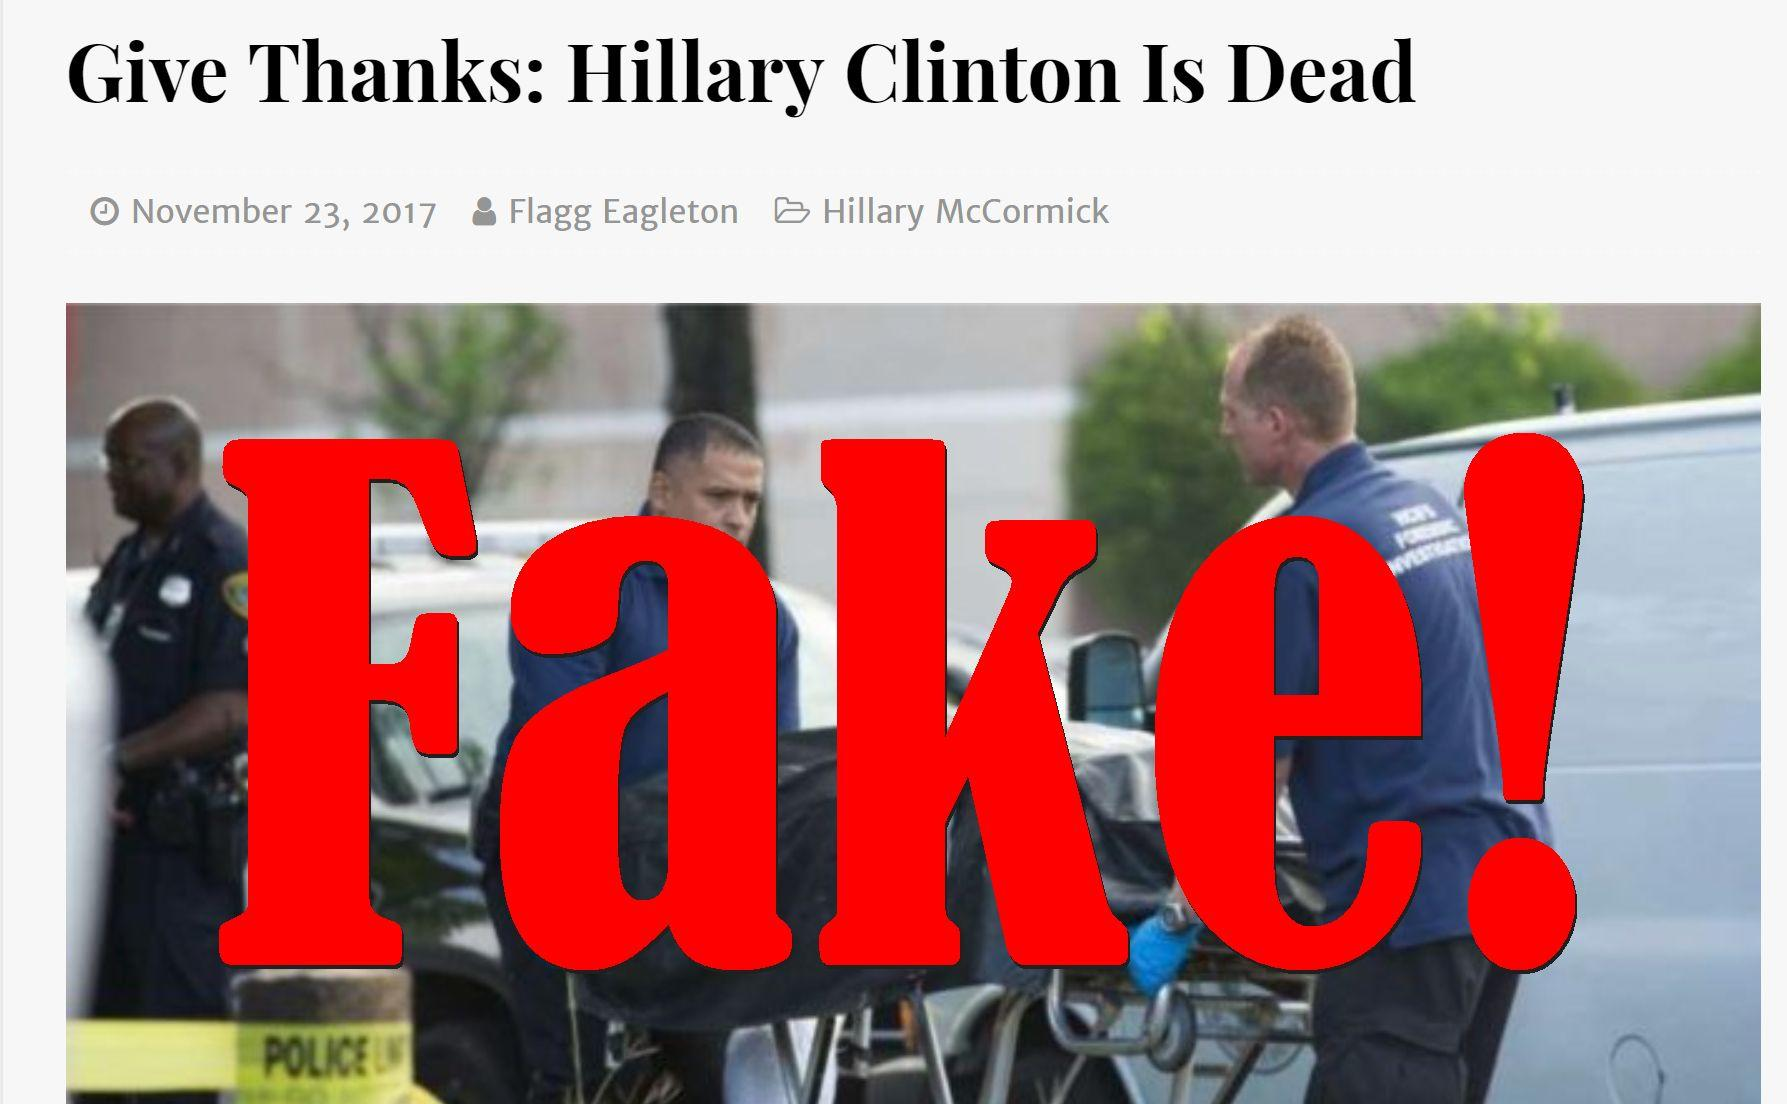 Fake News: Hillary Clinton NOT Dead On Thanksgiving